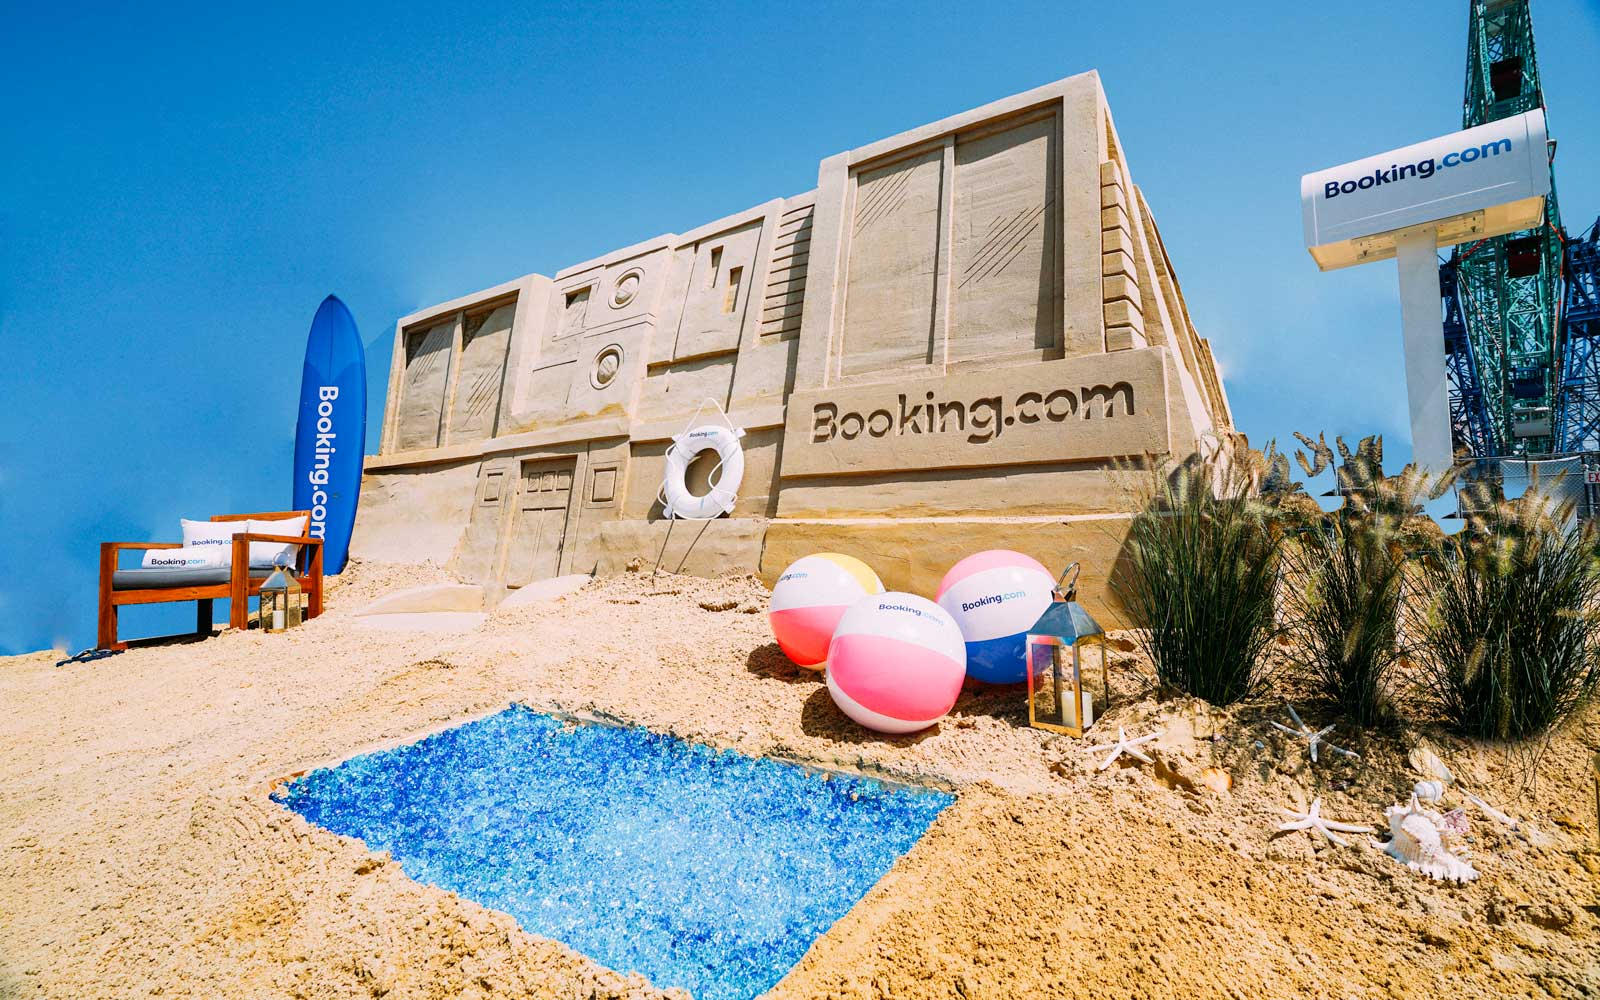 exterior of the the Booking.com sandcastle